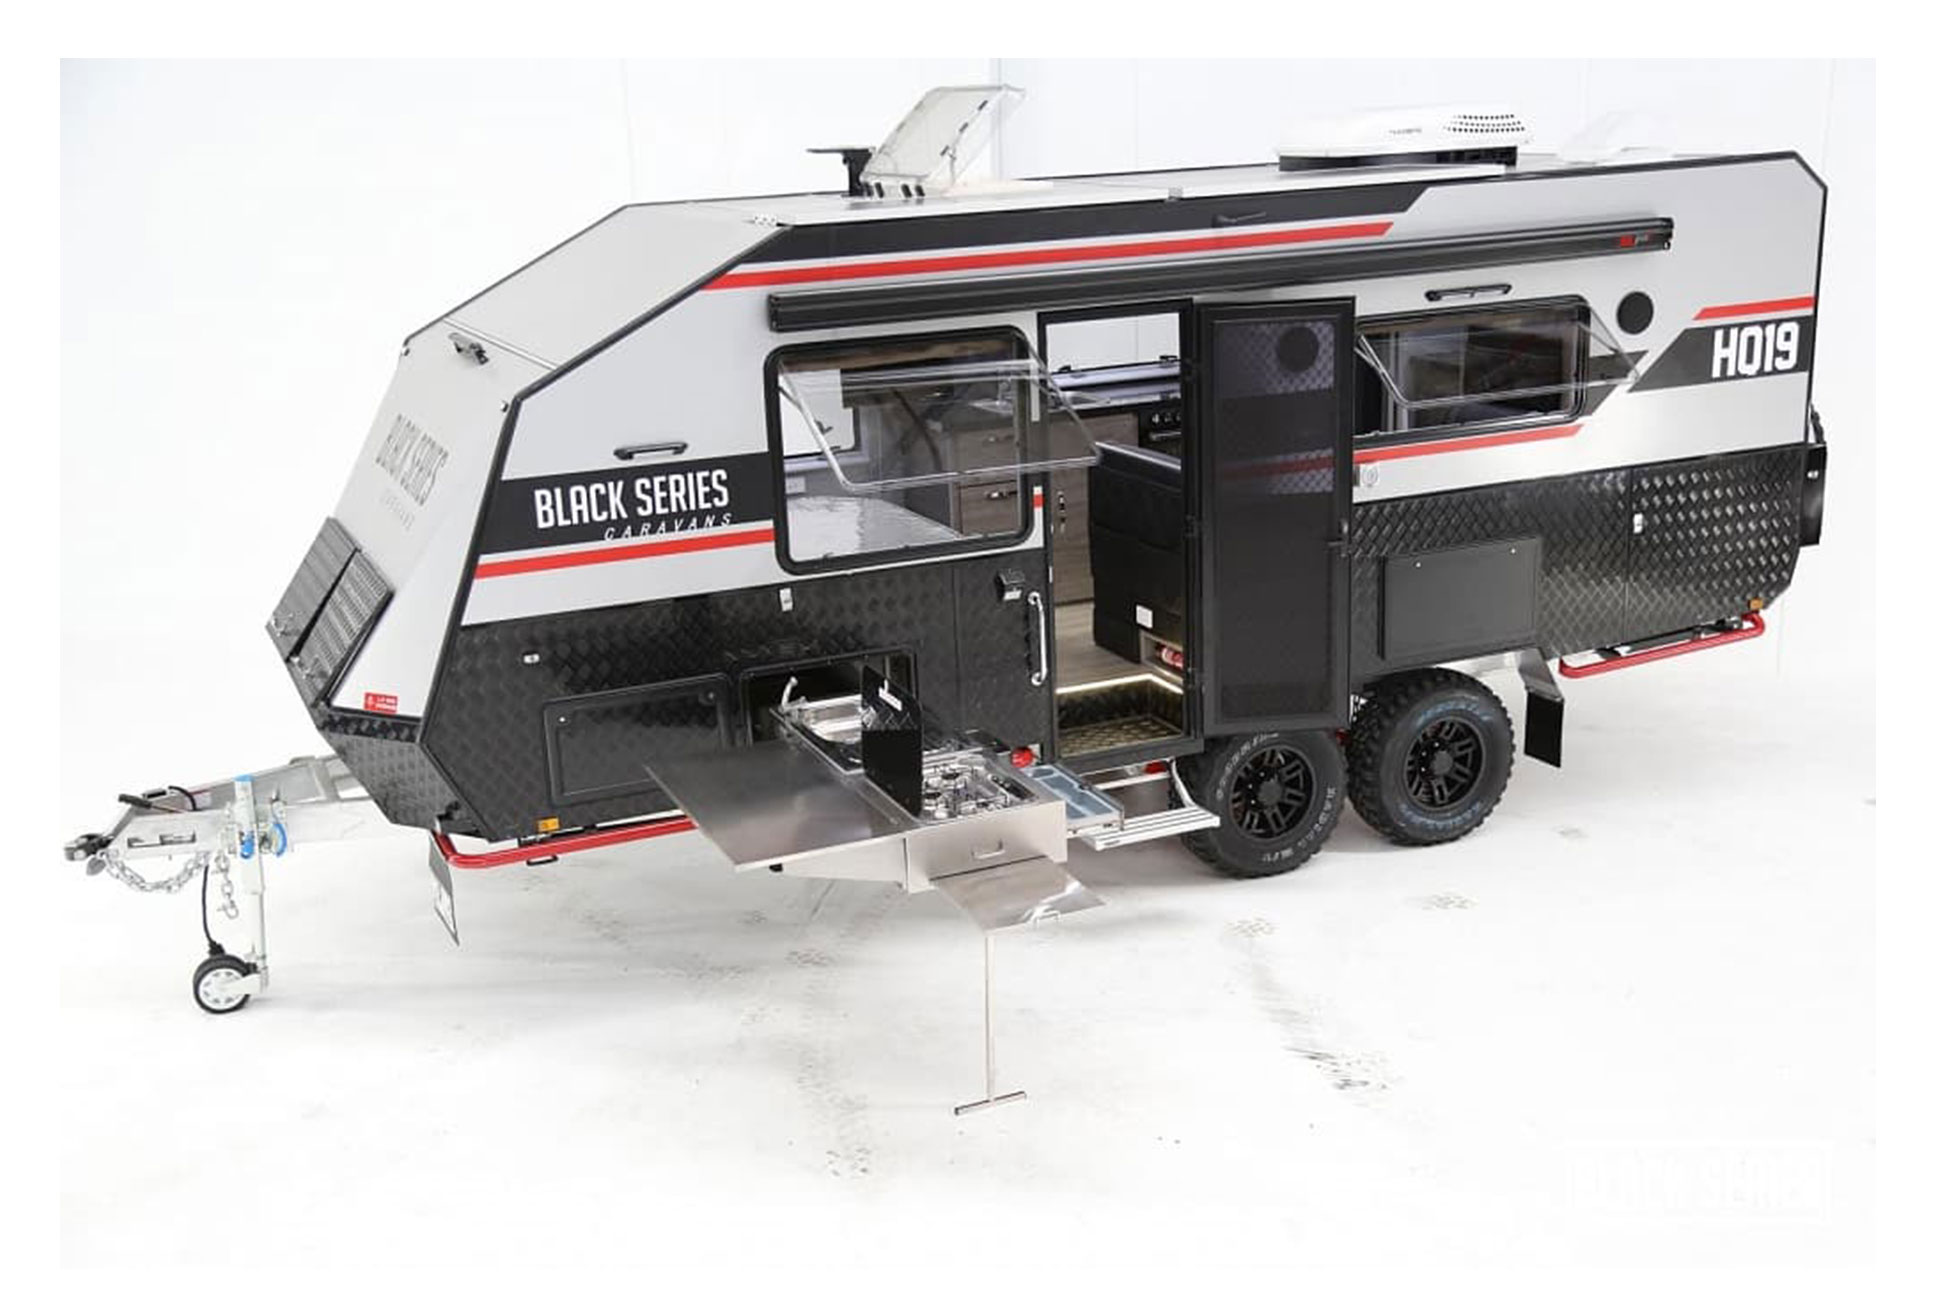 Black Series Hq19 Caravan